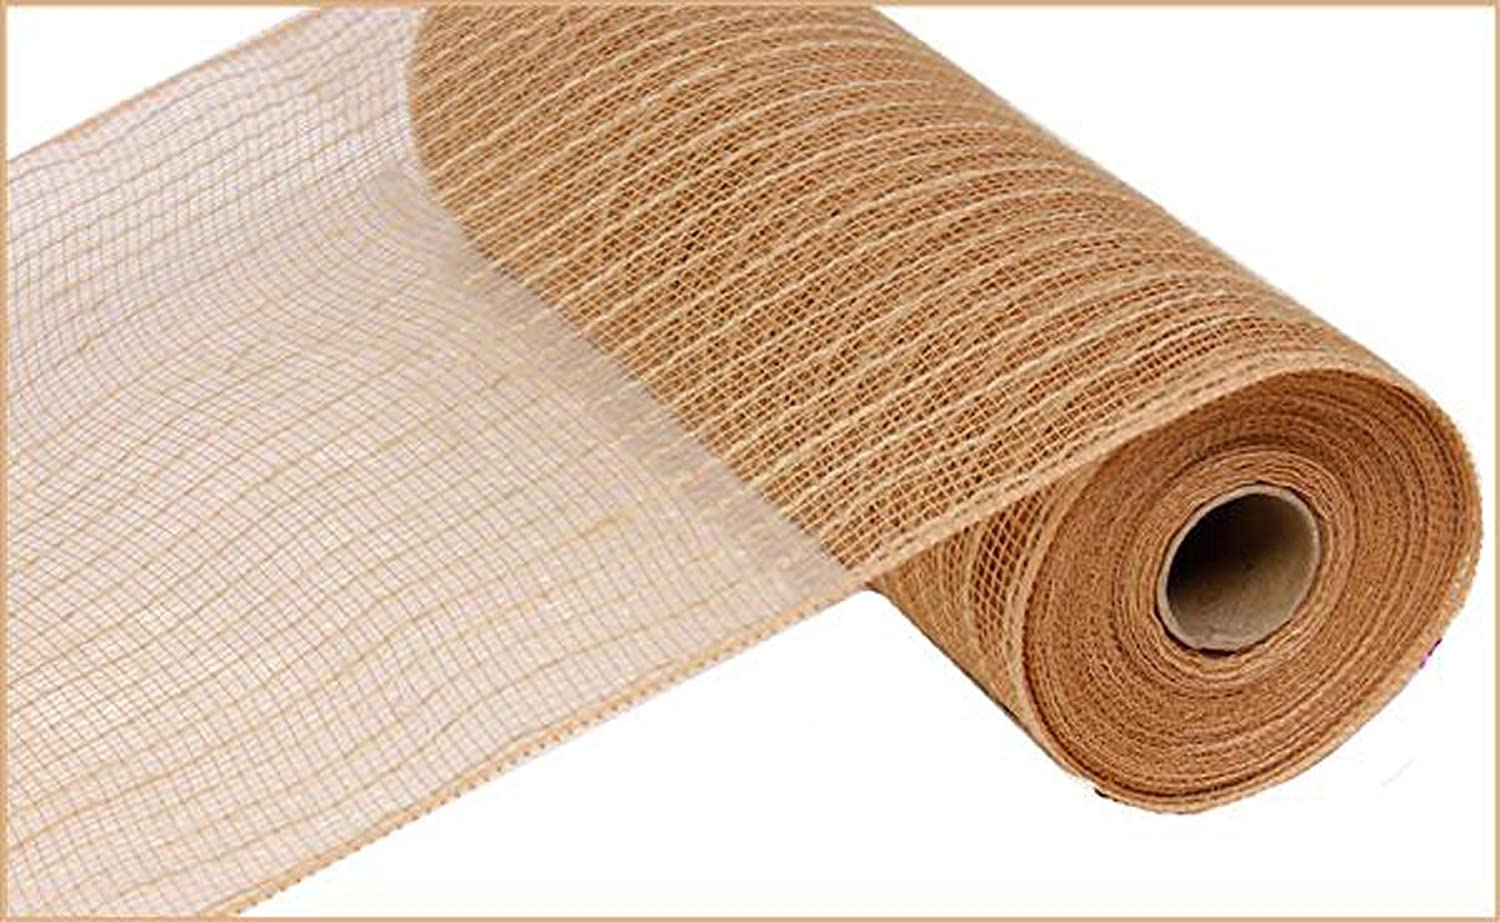 Poly Jute Burlap Deco Mesh, 10.5 Inches x 10 Yards (Natural) : RY800518